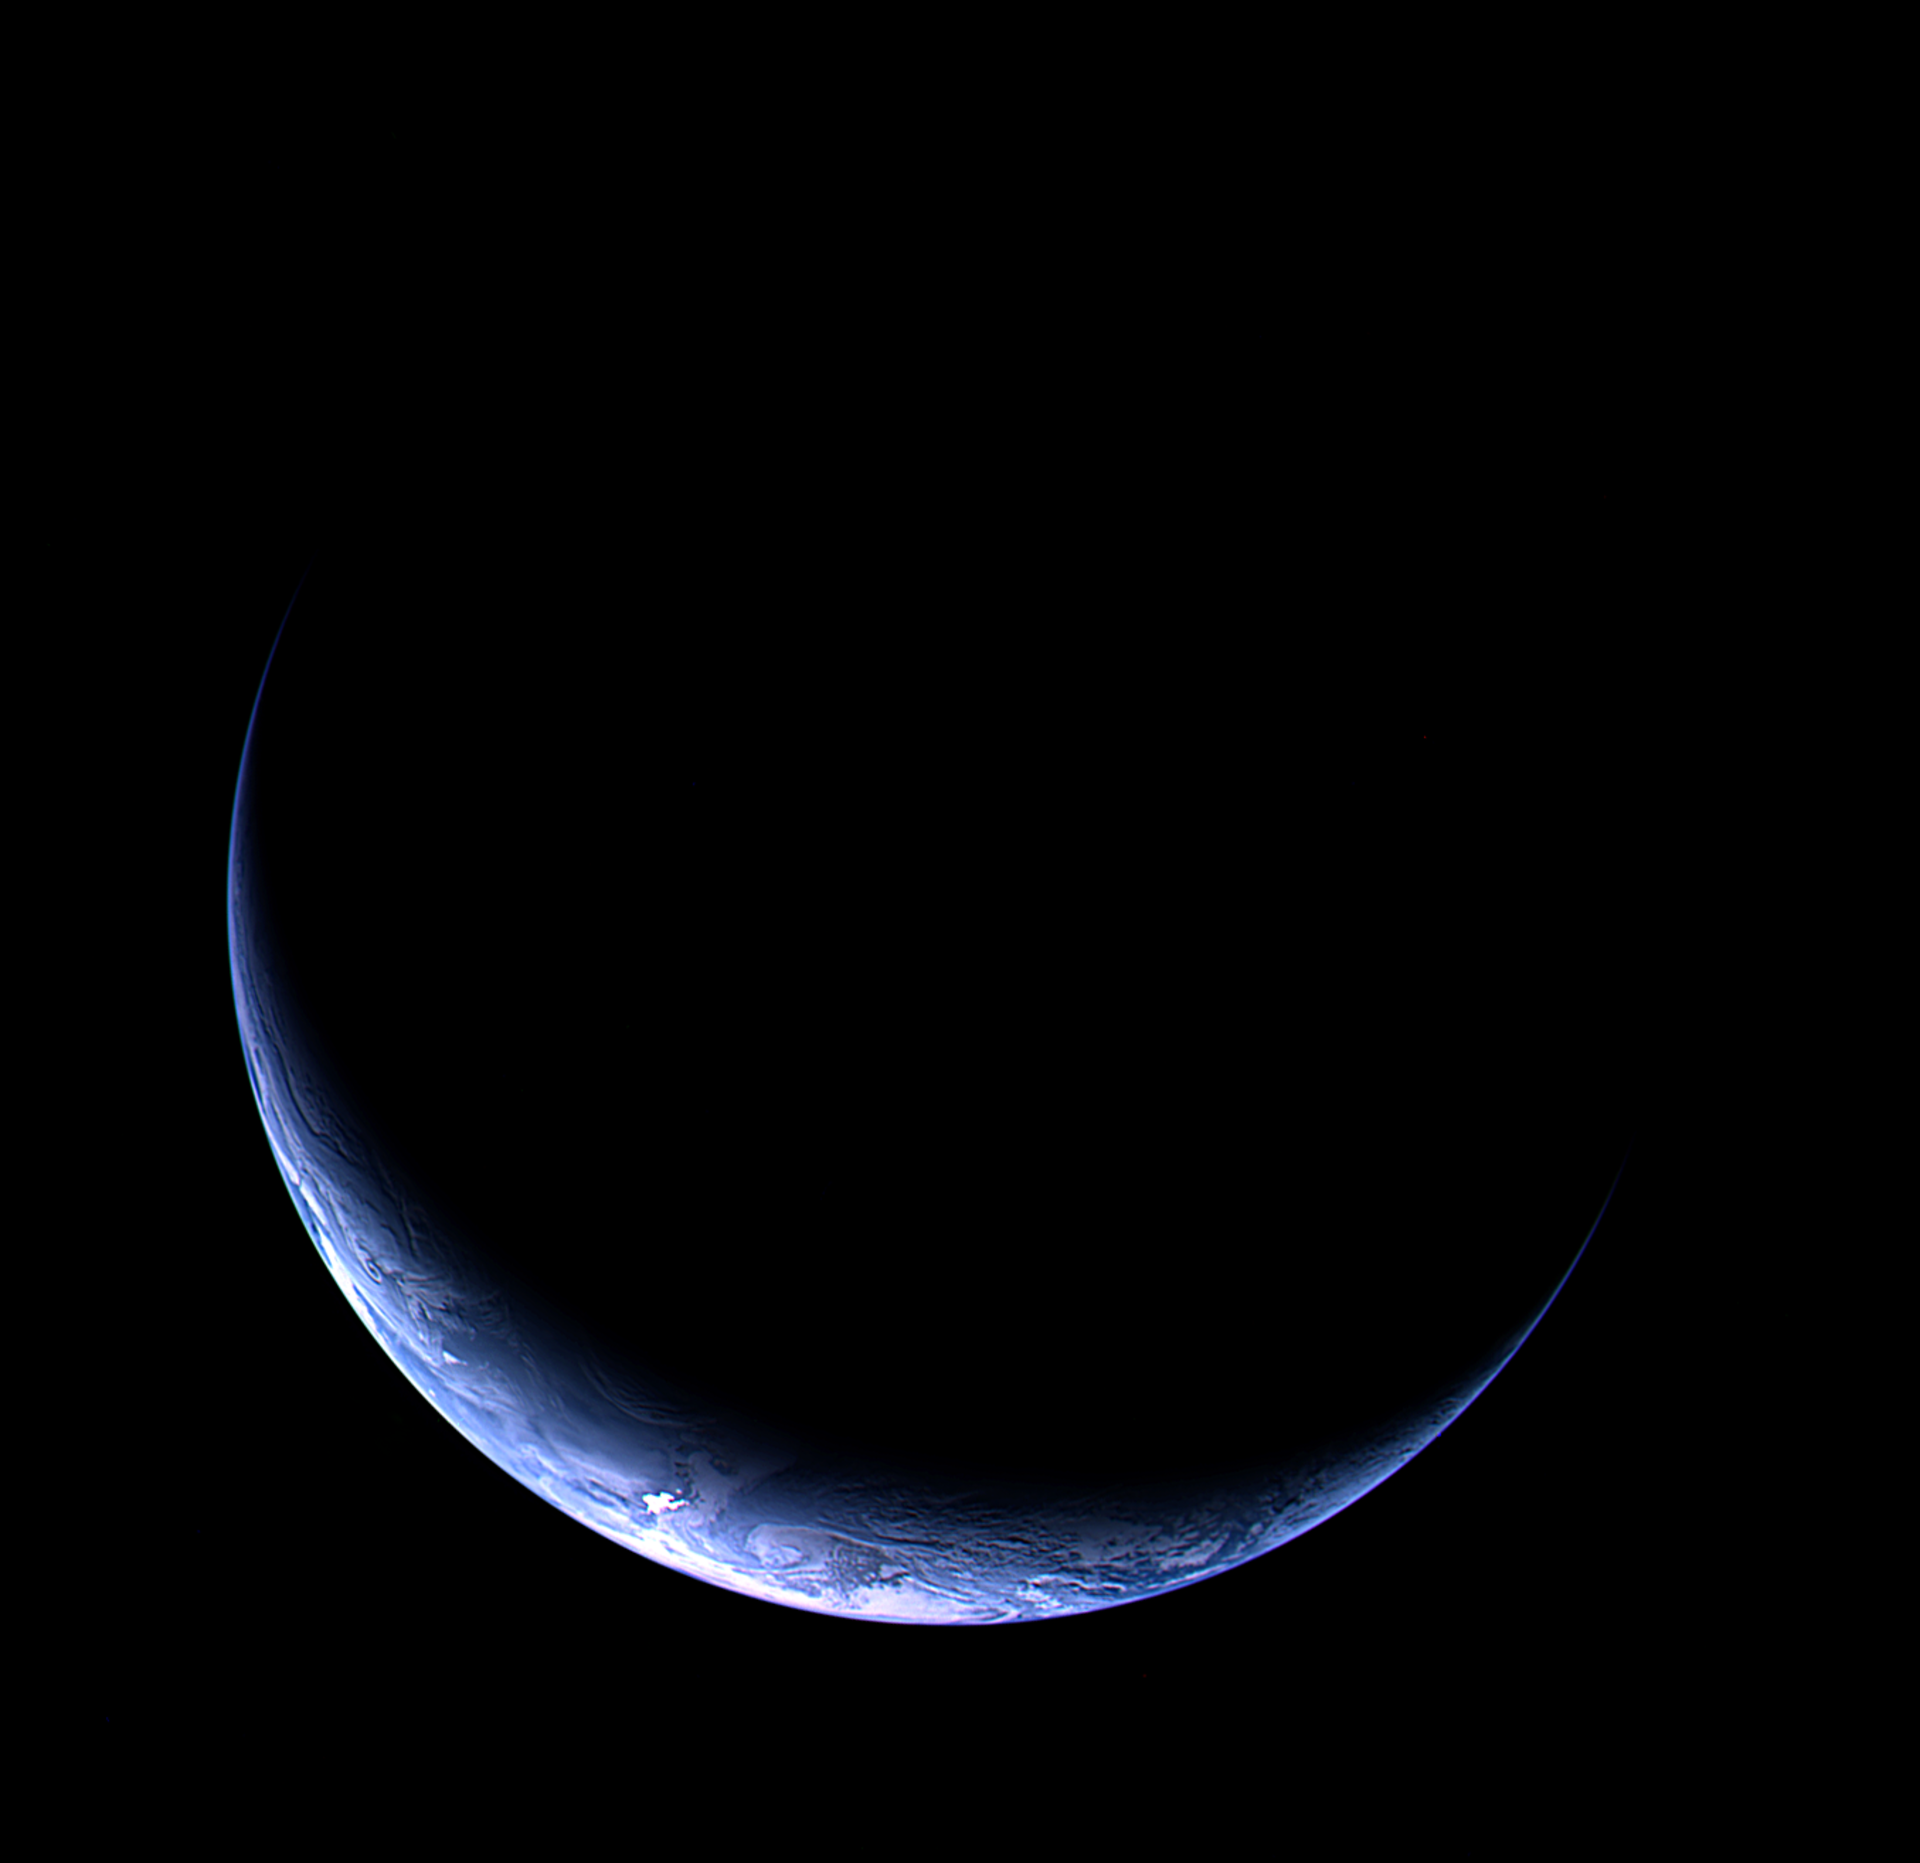 Real photo of Earth taken by Rosetta spacecraft